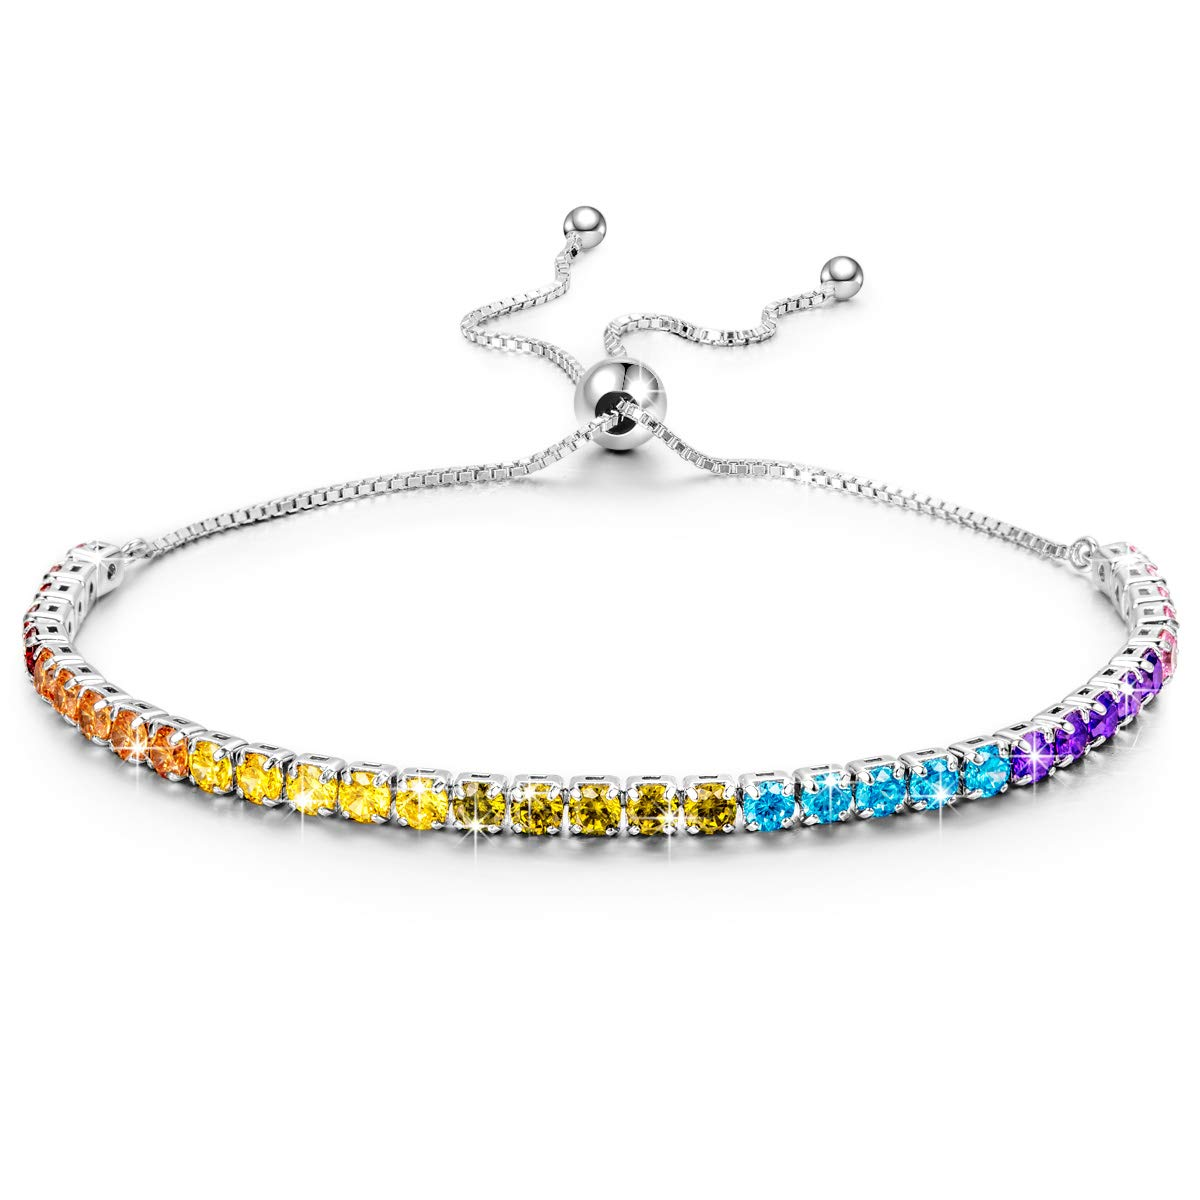 Kate Lynn Woman's Valentine Gifts 925 Sterling Silver Colorful Crystals Adjustable Tennis Bracelet Gifts for Her Ladies Gift